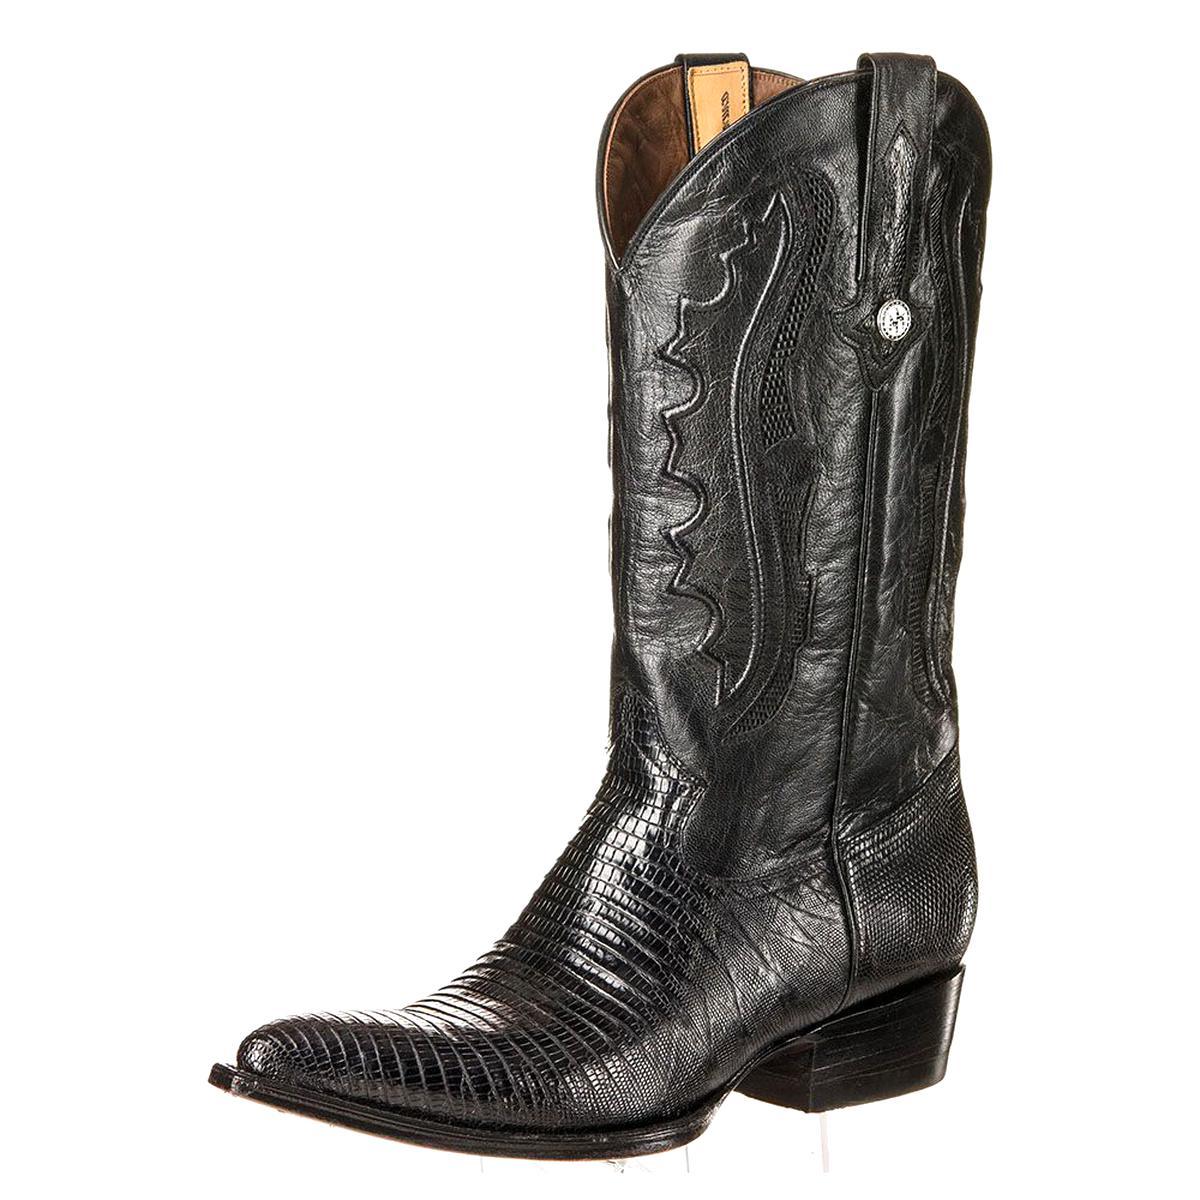 d'occasion Bottes Homme Bottes Mexicaine Bottes Santiag Santiag d'occasion Mexicaine Homme D9EH2IW